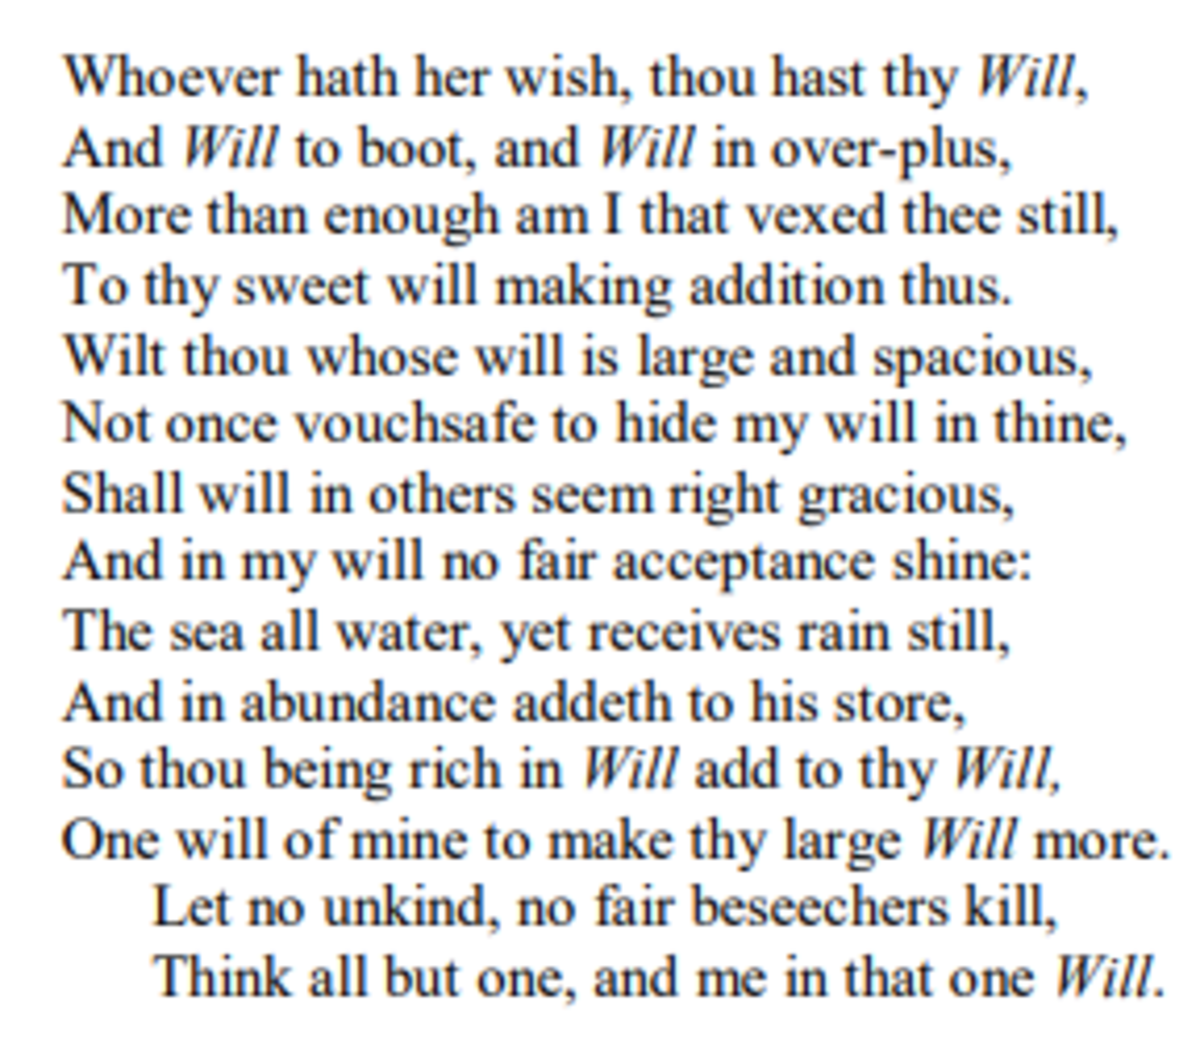 analysis-of-sonnet-135-by-william-shakespeare